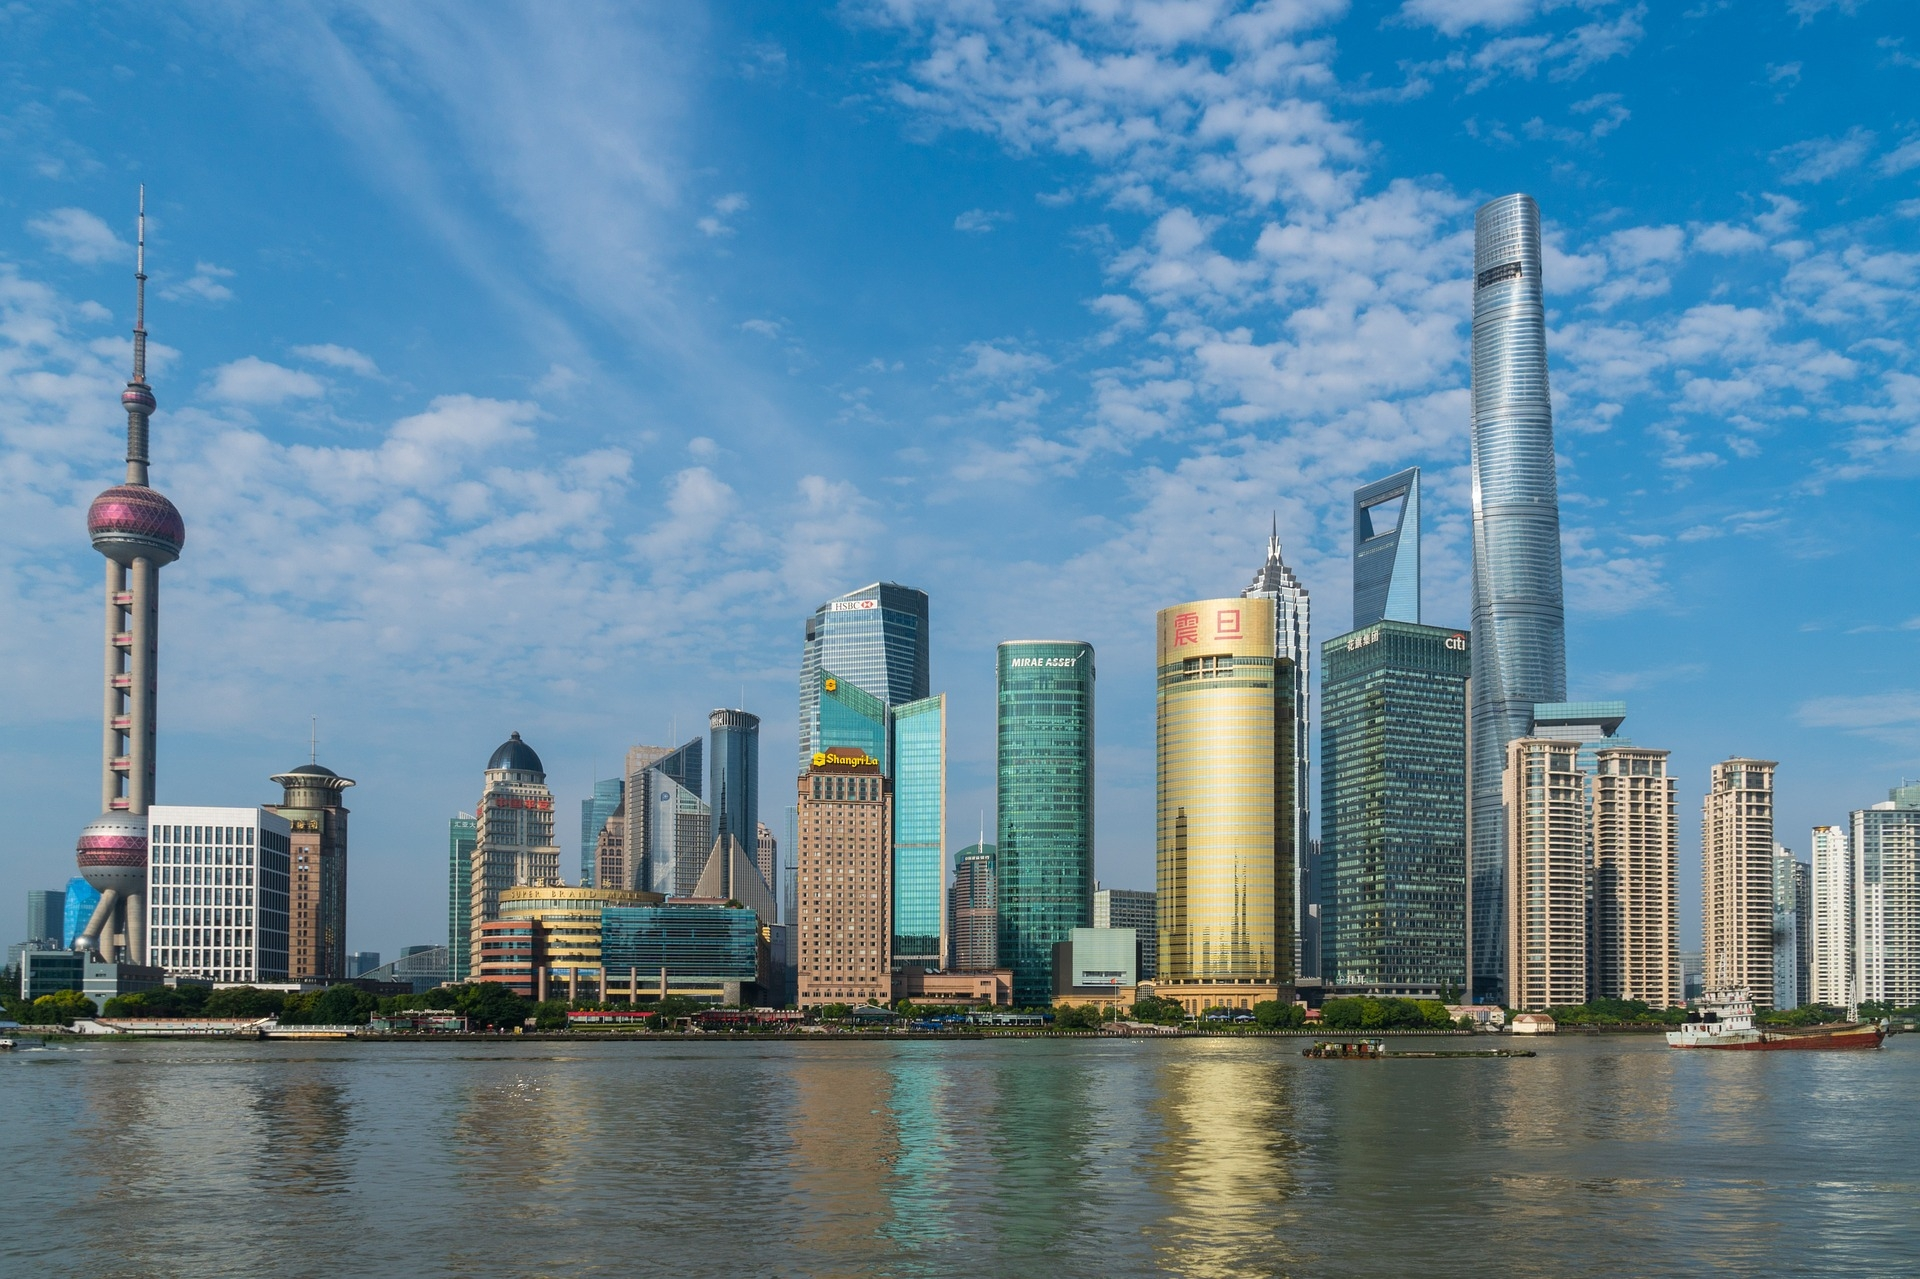 Skyline of Shanghai, China in the daytime